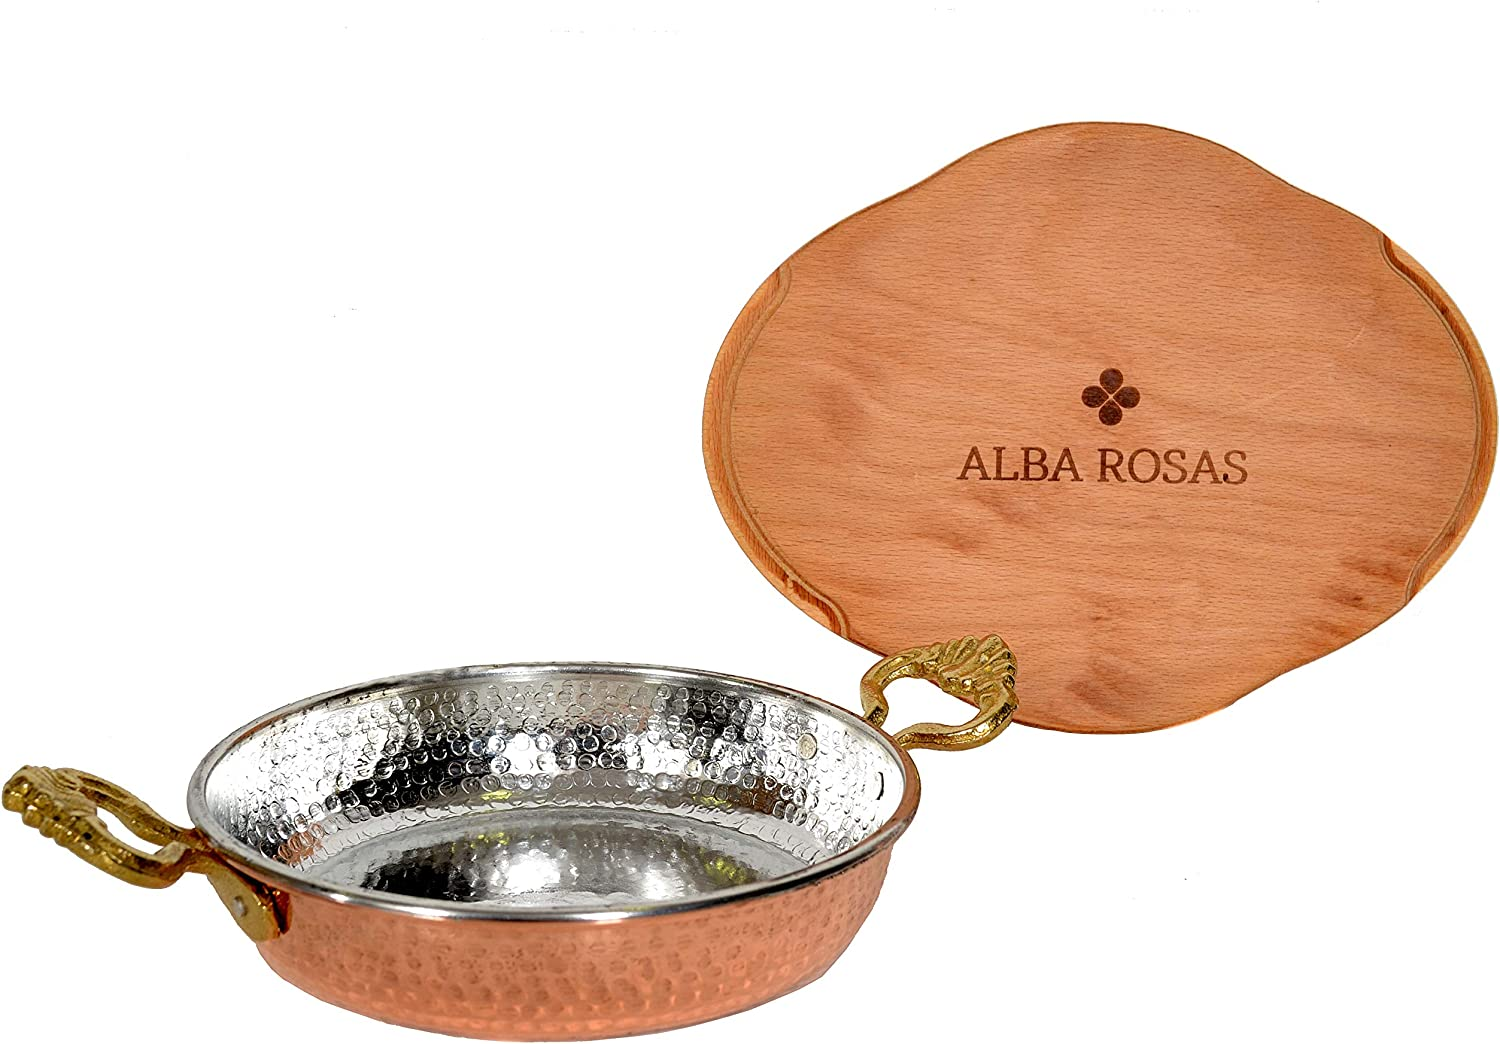 ALBA ROSAS 7.08 inch Thick 2mm Weight 0.92 pounds Hammered Copper Pan – Turkish Greek Arabic Heat Resistant Egg Omelette Frying Pan with Natural Wooden Base - 18 cm